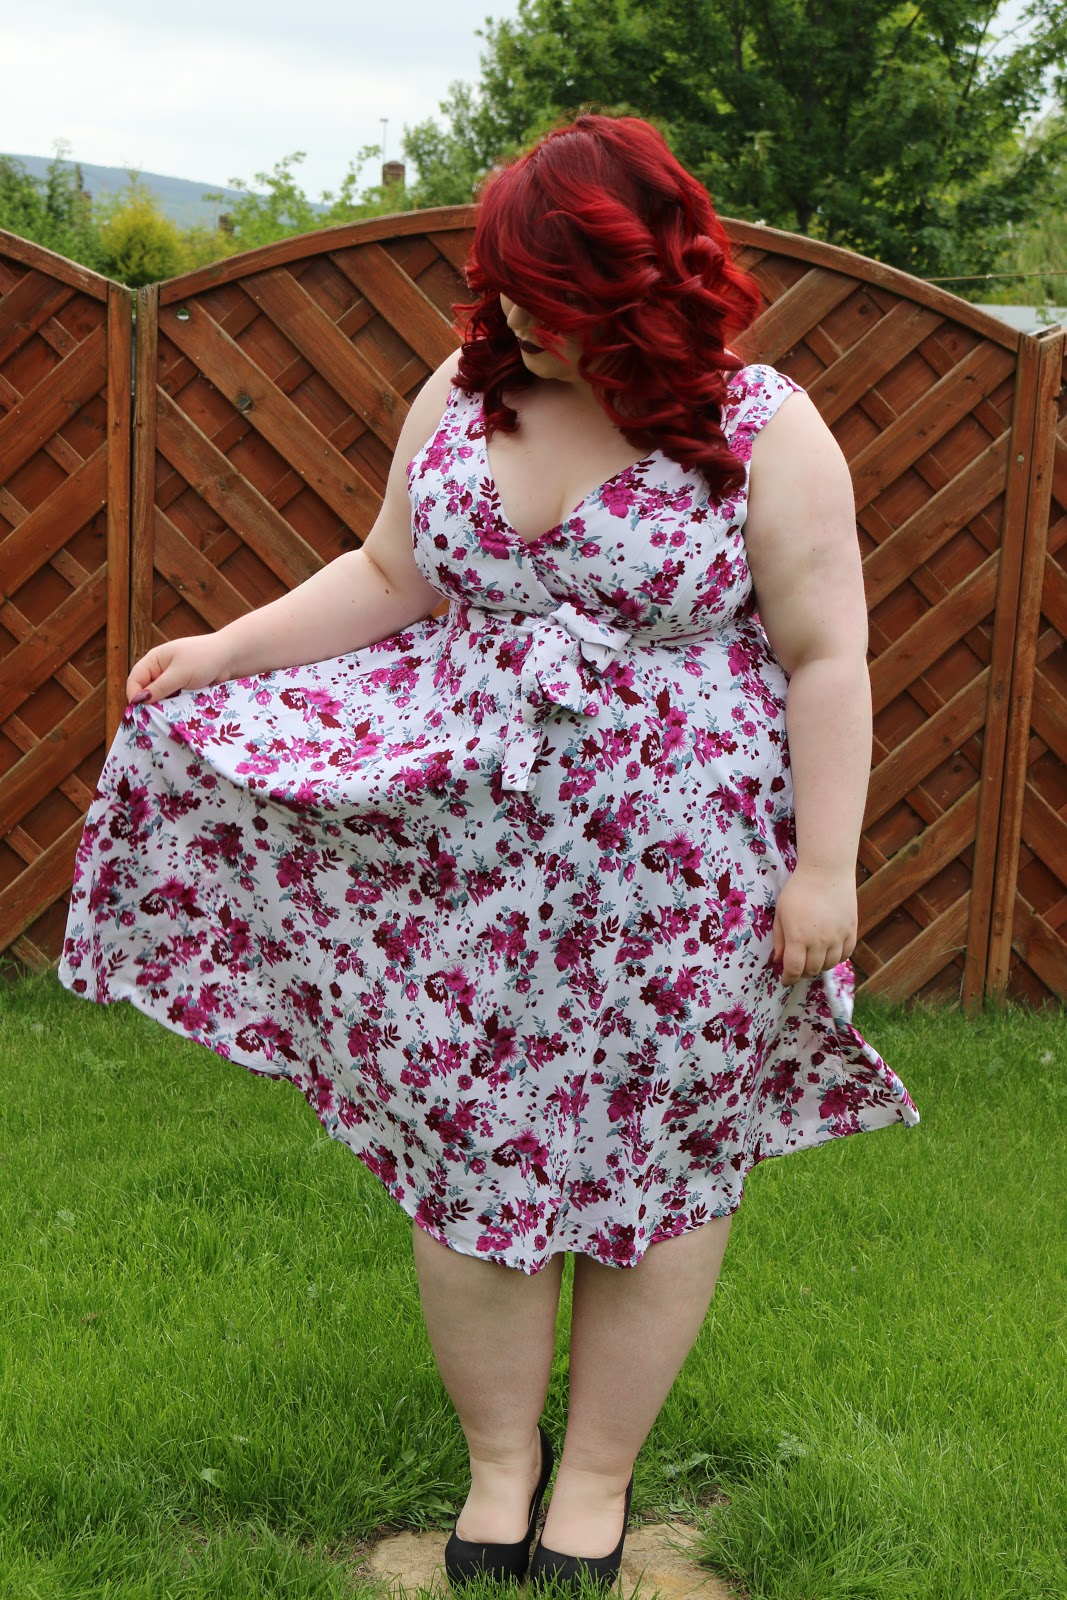 For the georgina bbw red head absolutely